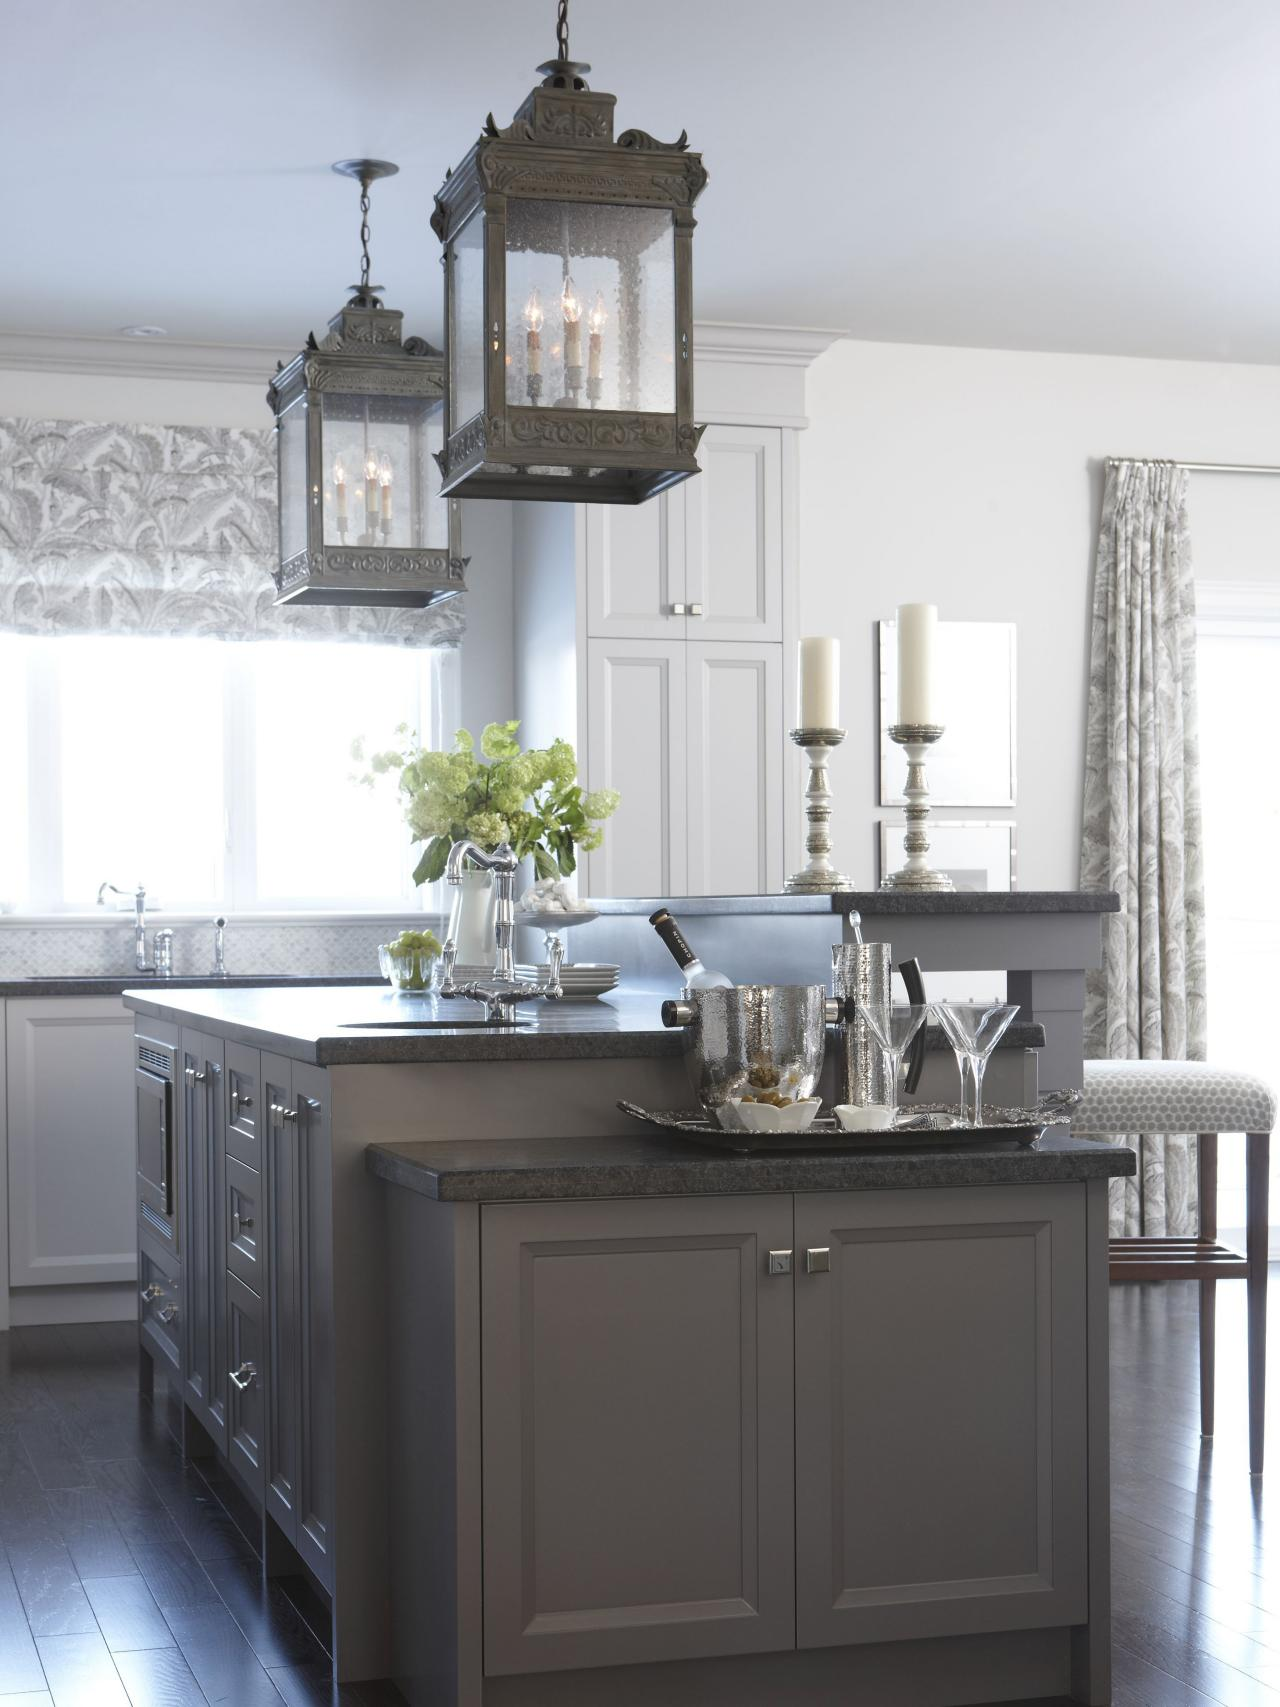 Kitchen Islands With Seating & Ideas From HGTV